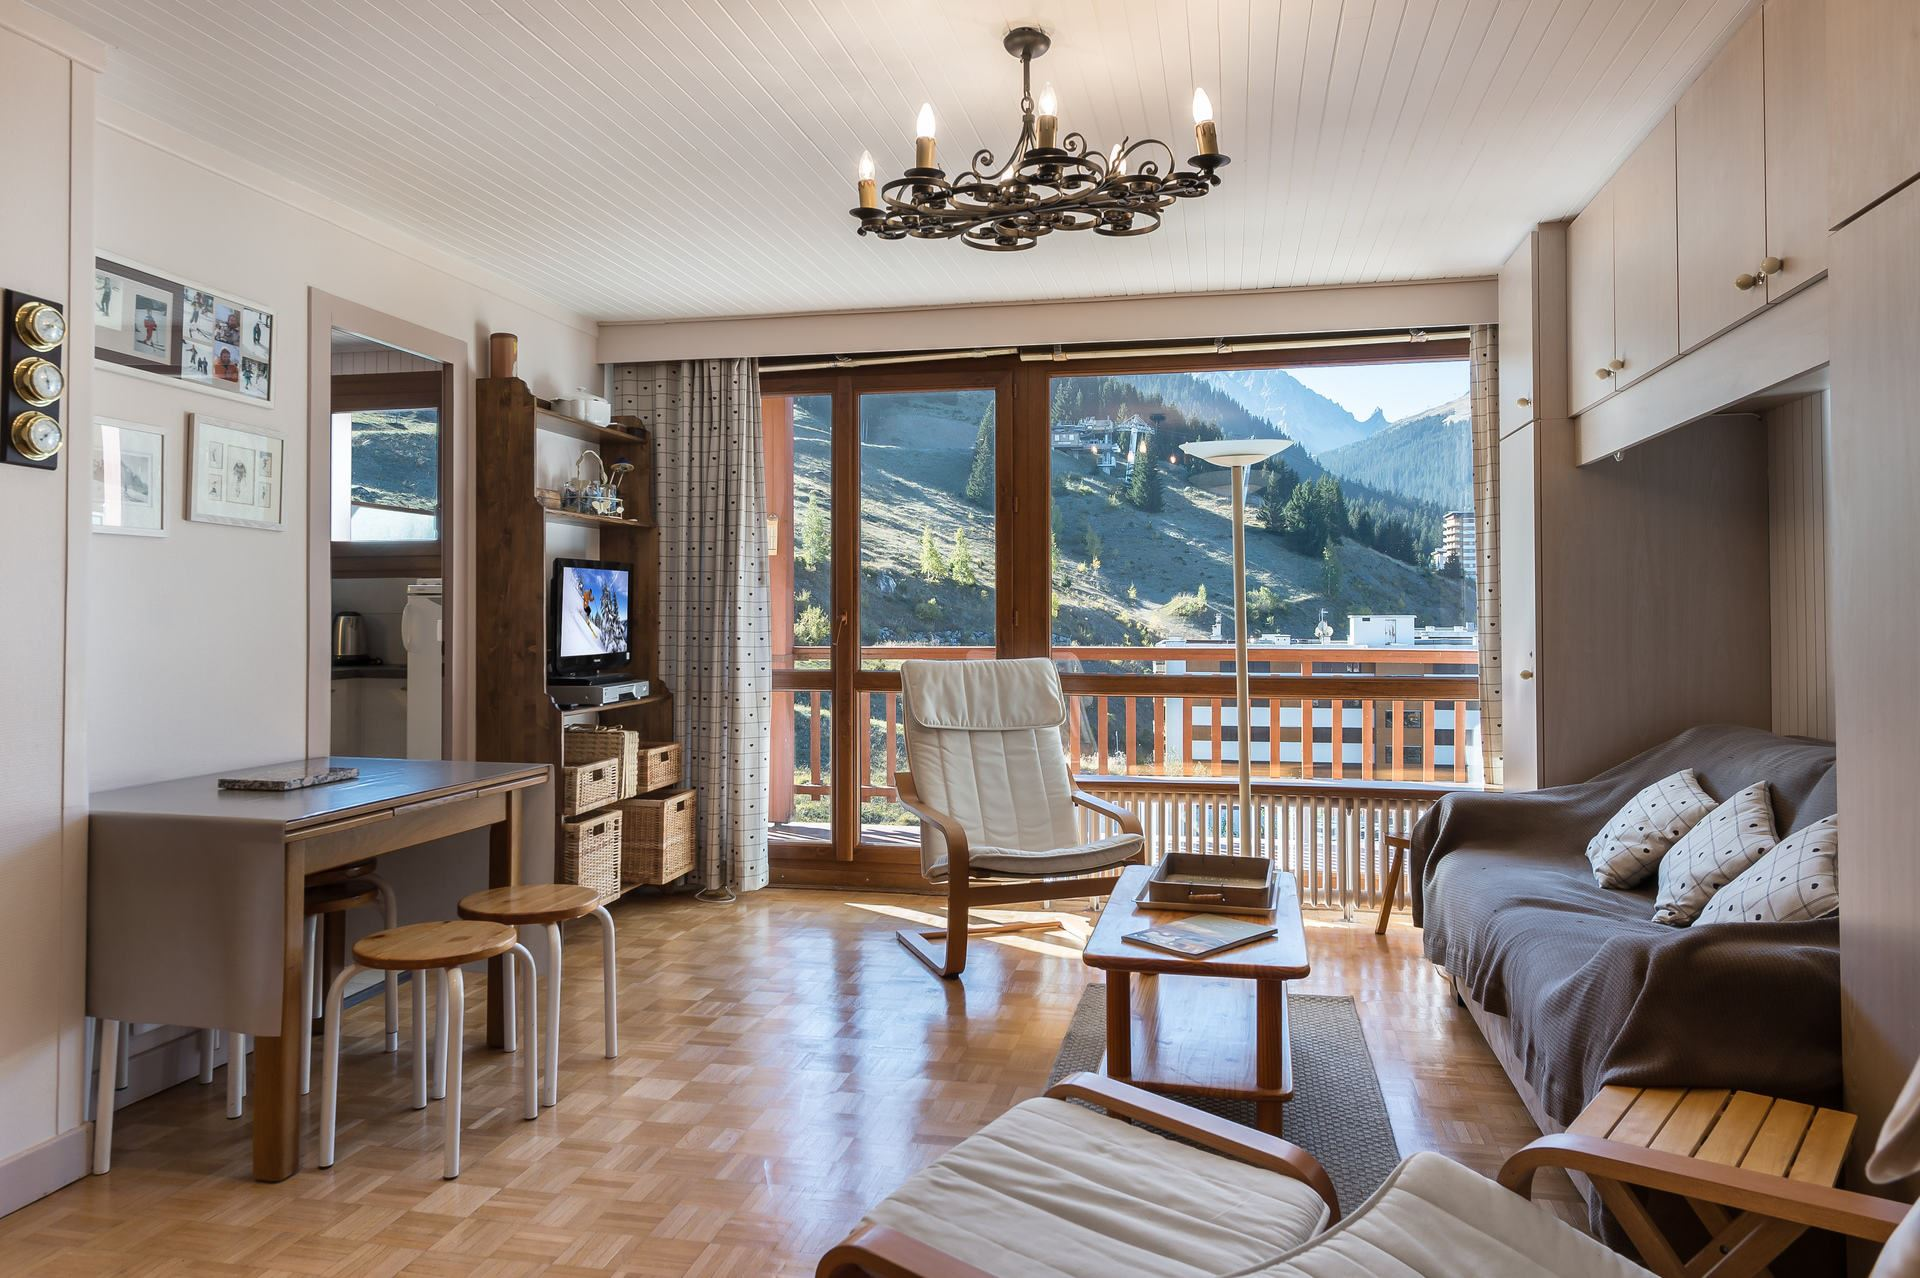 Studio 4 people ski-in ski-out / RESIDENCE 1650 27 (mountain)